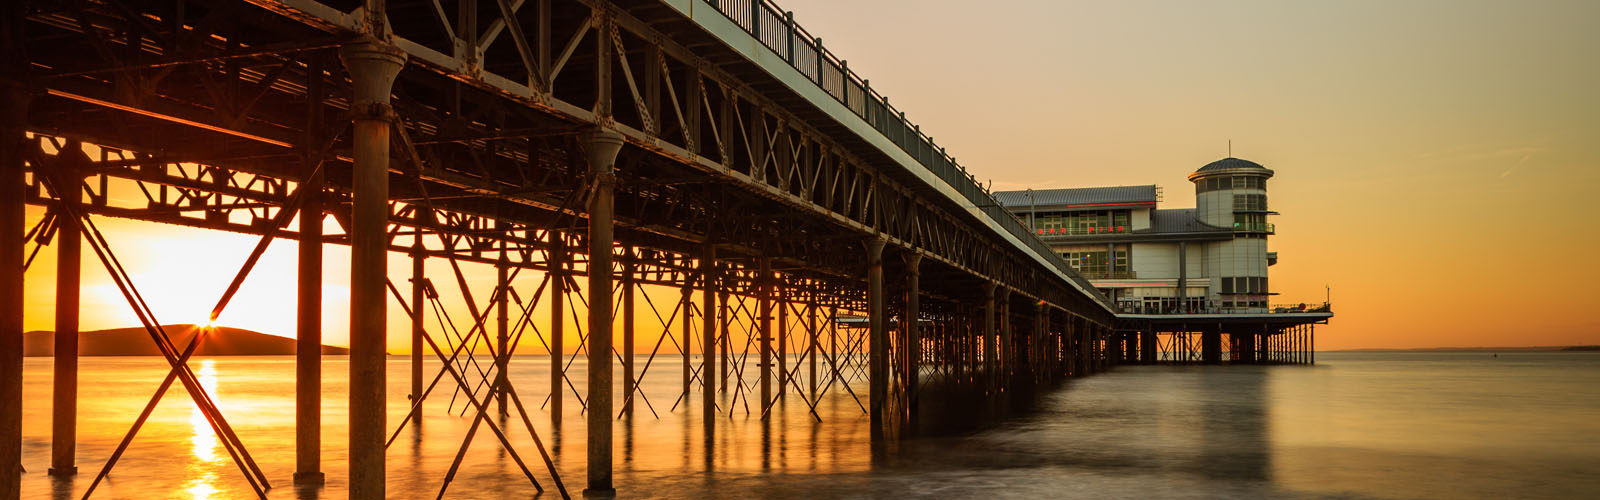 Weston-super-Mare pier at sunset.